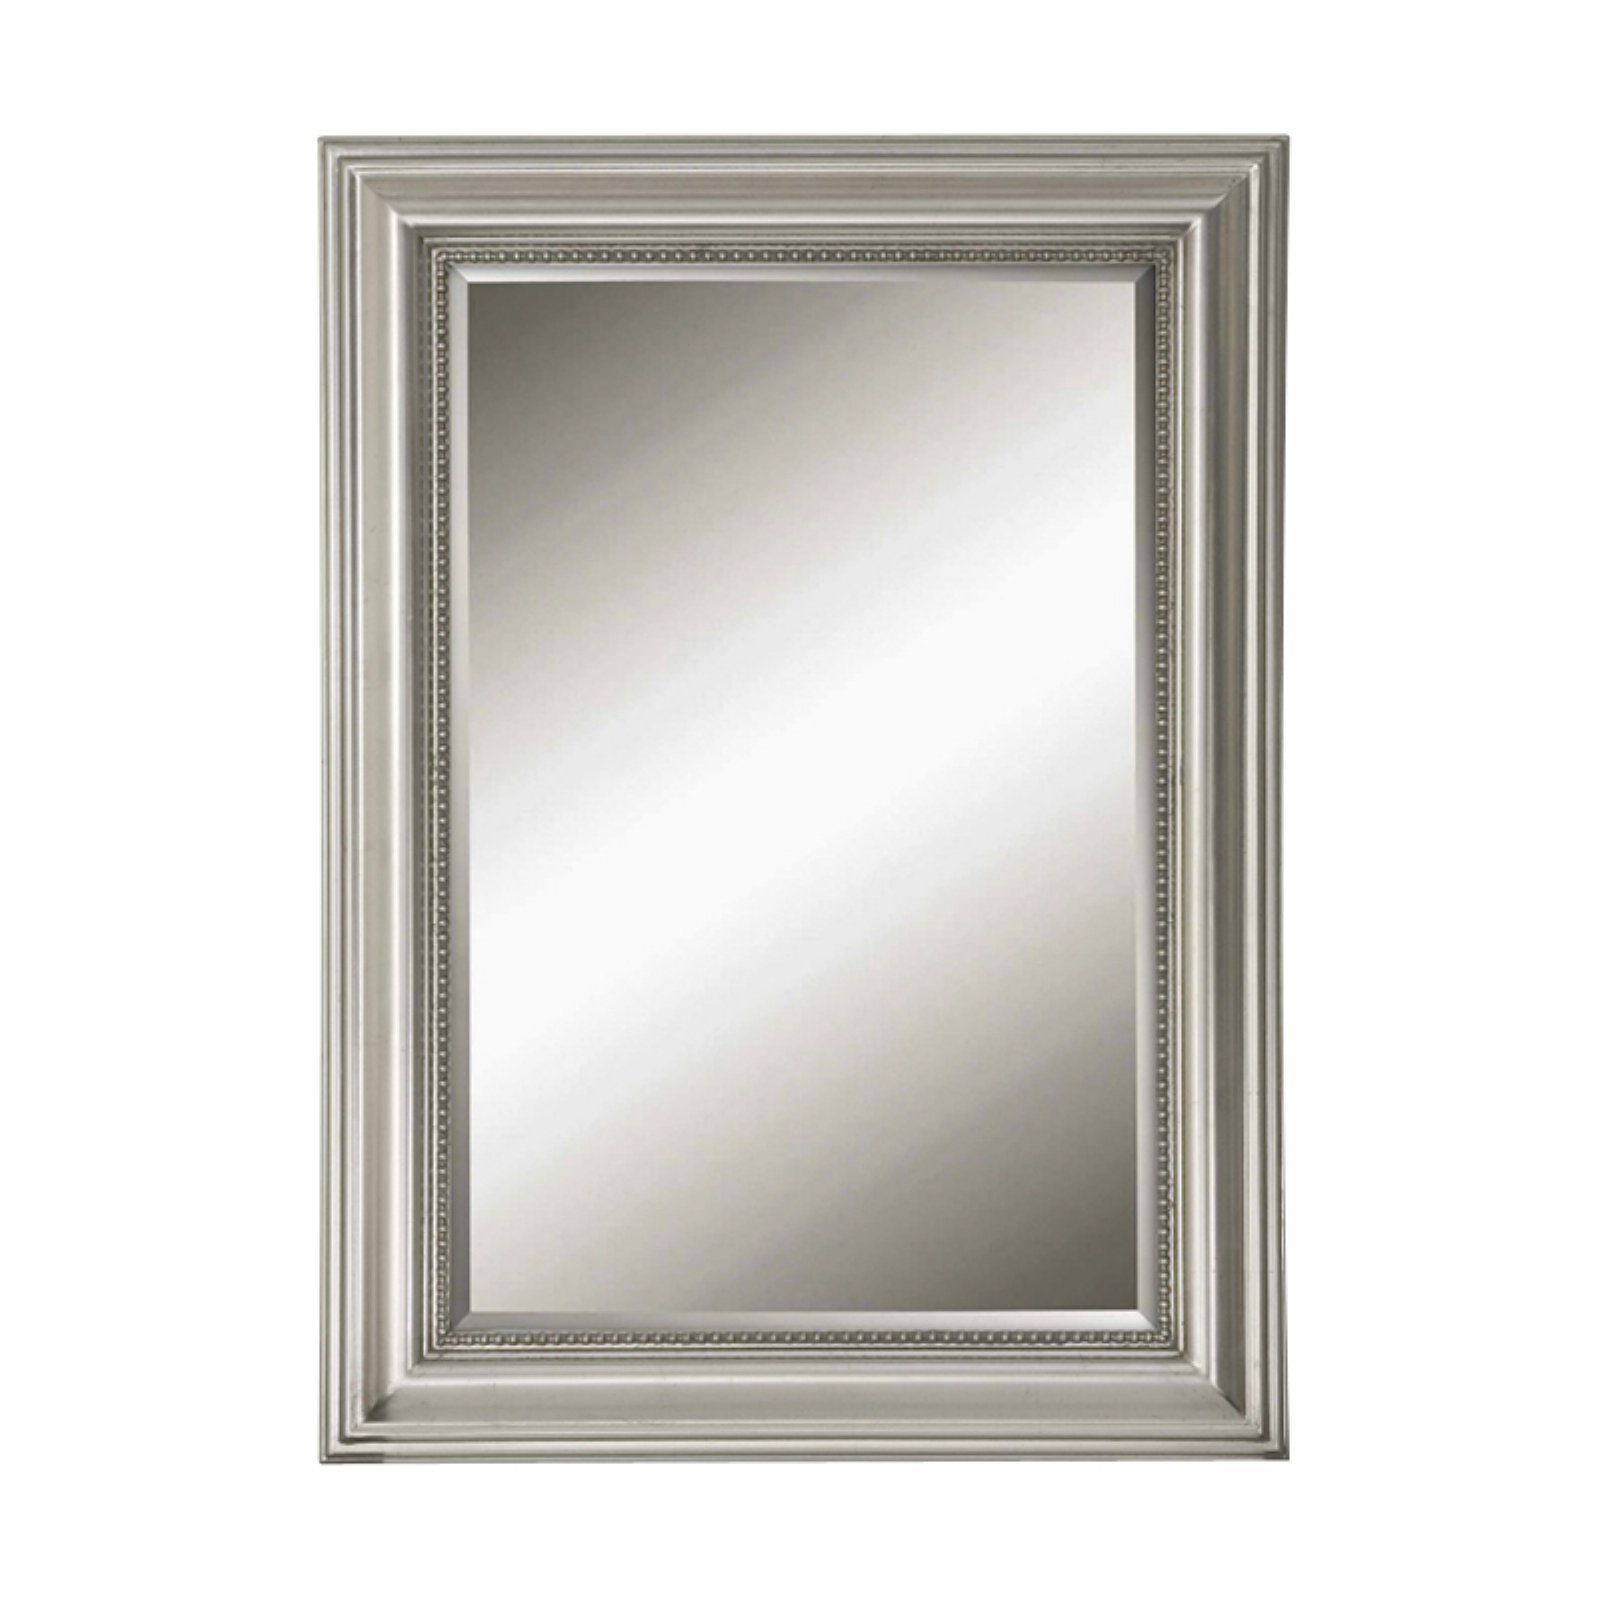 Uttermost Stuart Silver Leaf & Black Wall Mirror 26.75W